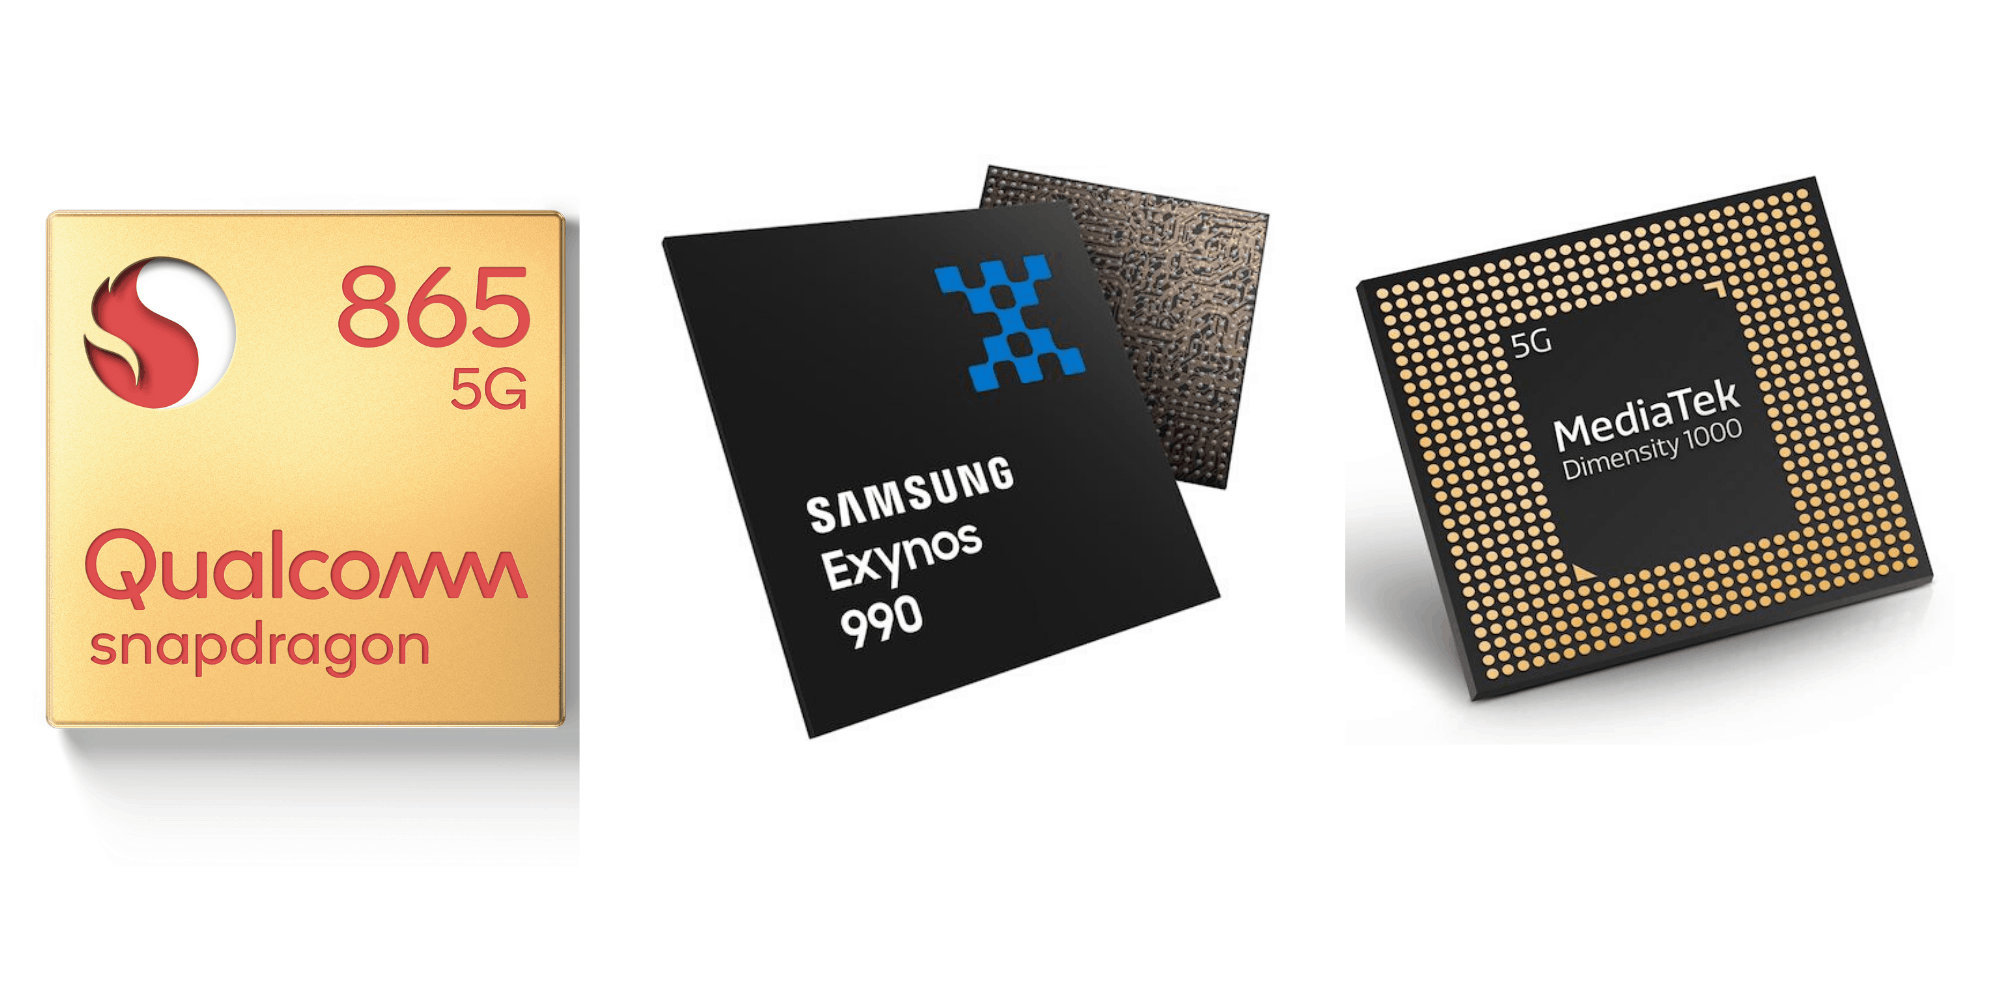 Qualcomm Snapdragon 865 vs Samsung Exynos 990 vs MediaTek Dimensity 1000 vs Huawei Kirin 990 5G